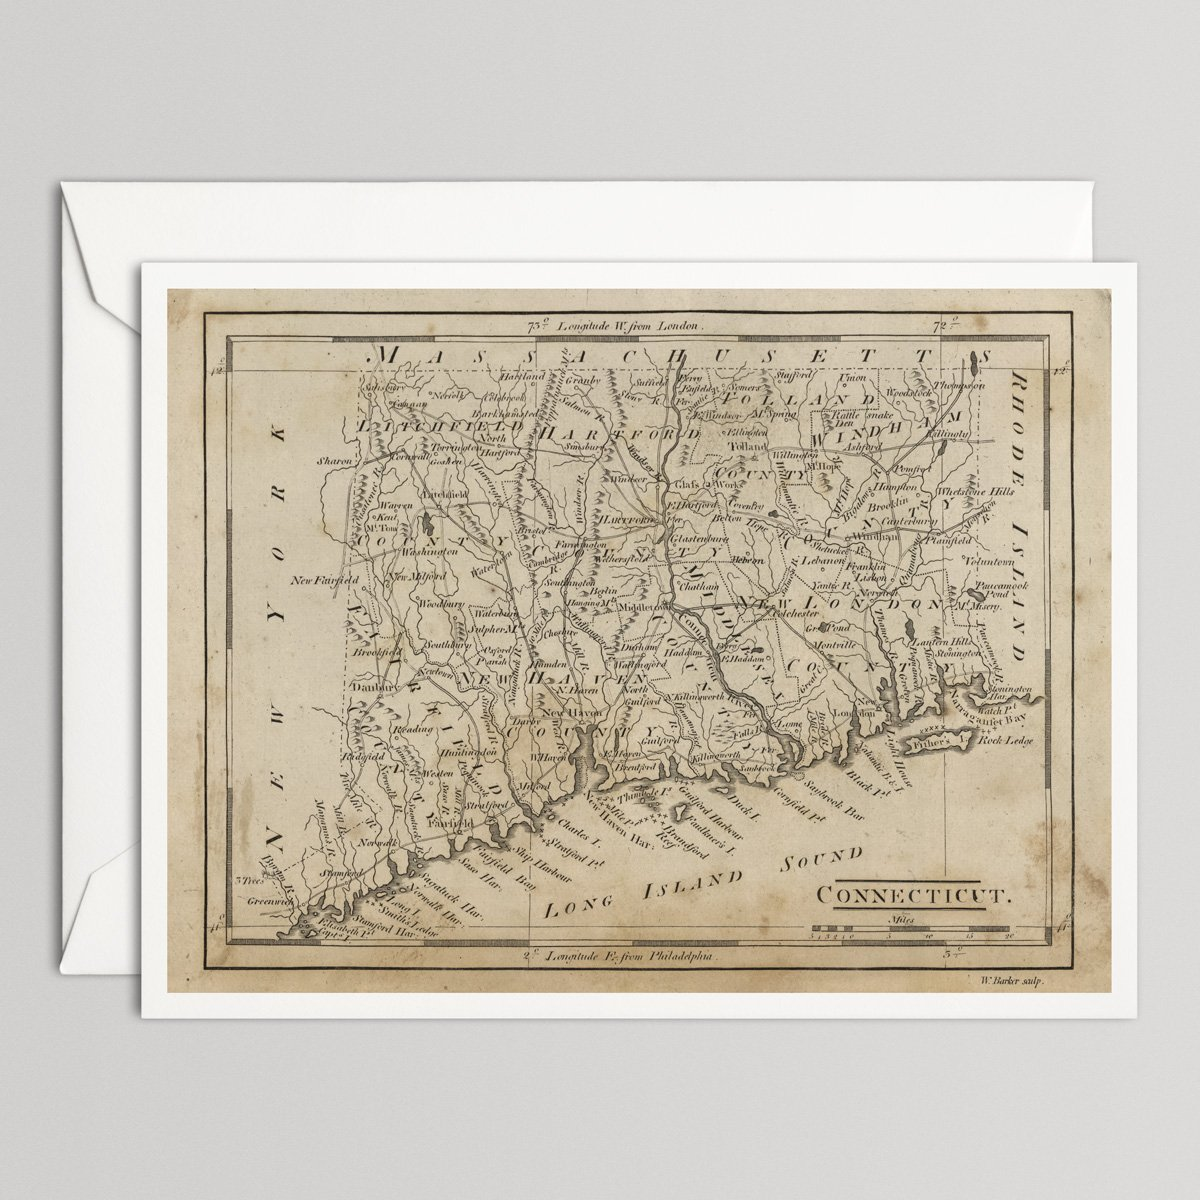 Amazon.com: Connecticut Old Map Large Note Card with ... on map food, map clocks, map colors, map luggage tags, map magnets, map napkins, map boxes, map party favors, map plastic, map of peru, map pencils, map downtown los angeles, map ties, map brochures, map test sheets, map name tags, map rubber stamp, map scales, map markers, map stickers,